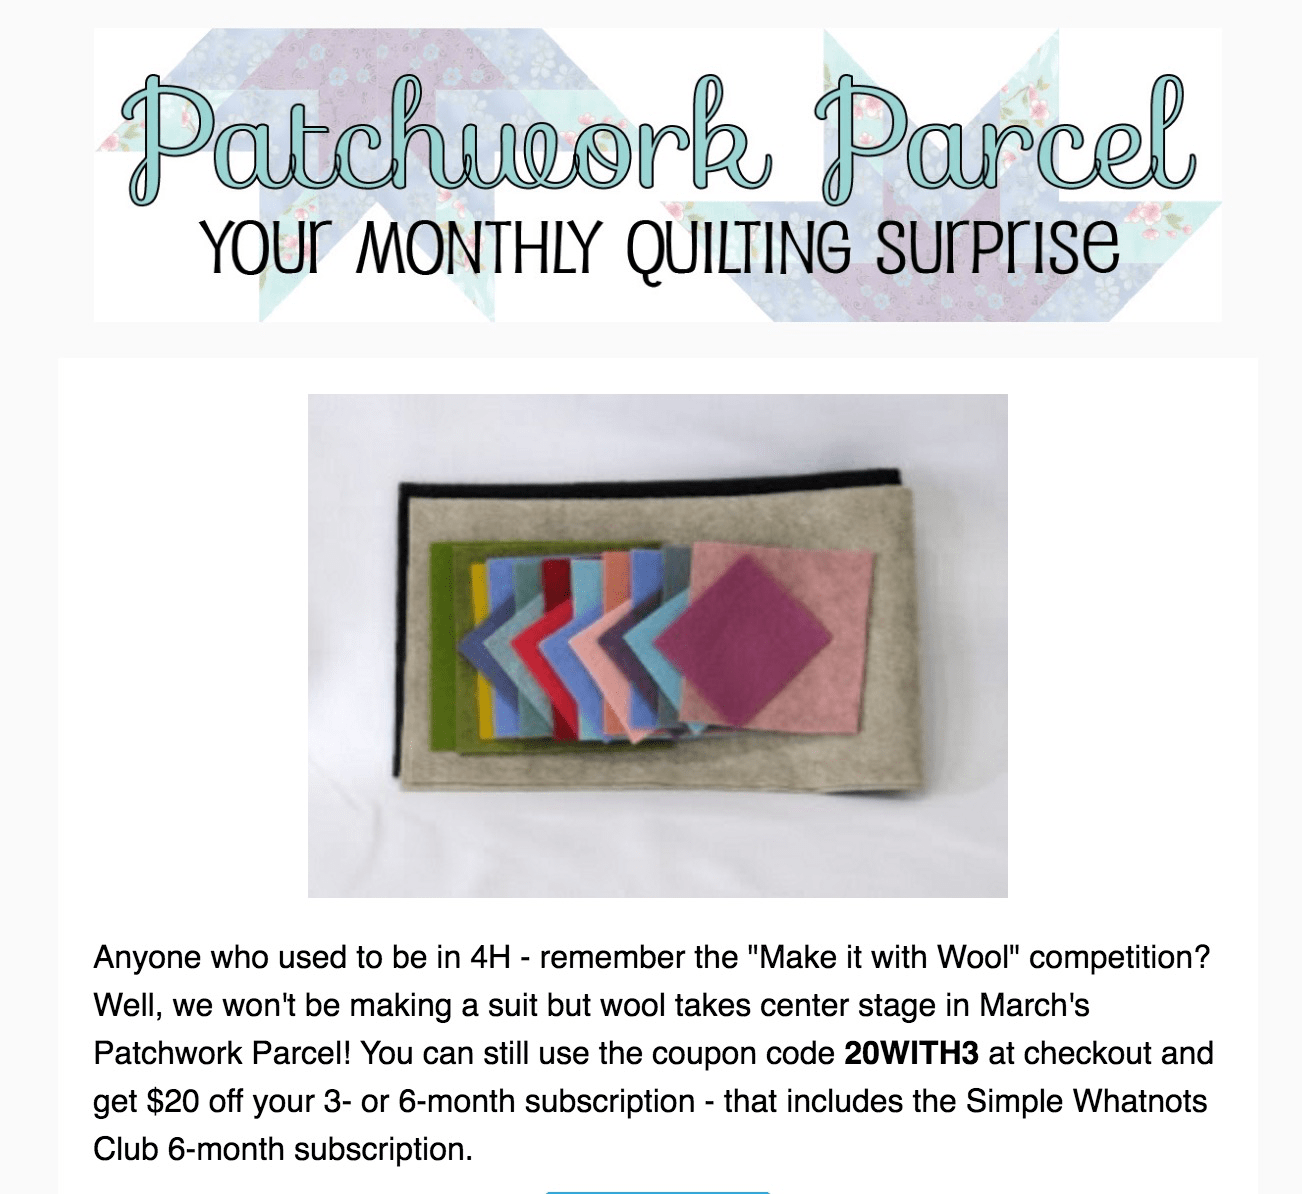 Patchwork Parcel August 2017 Spoiler + Coupon